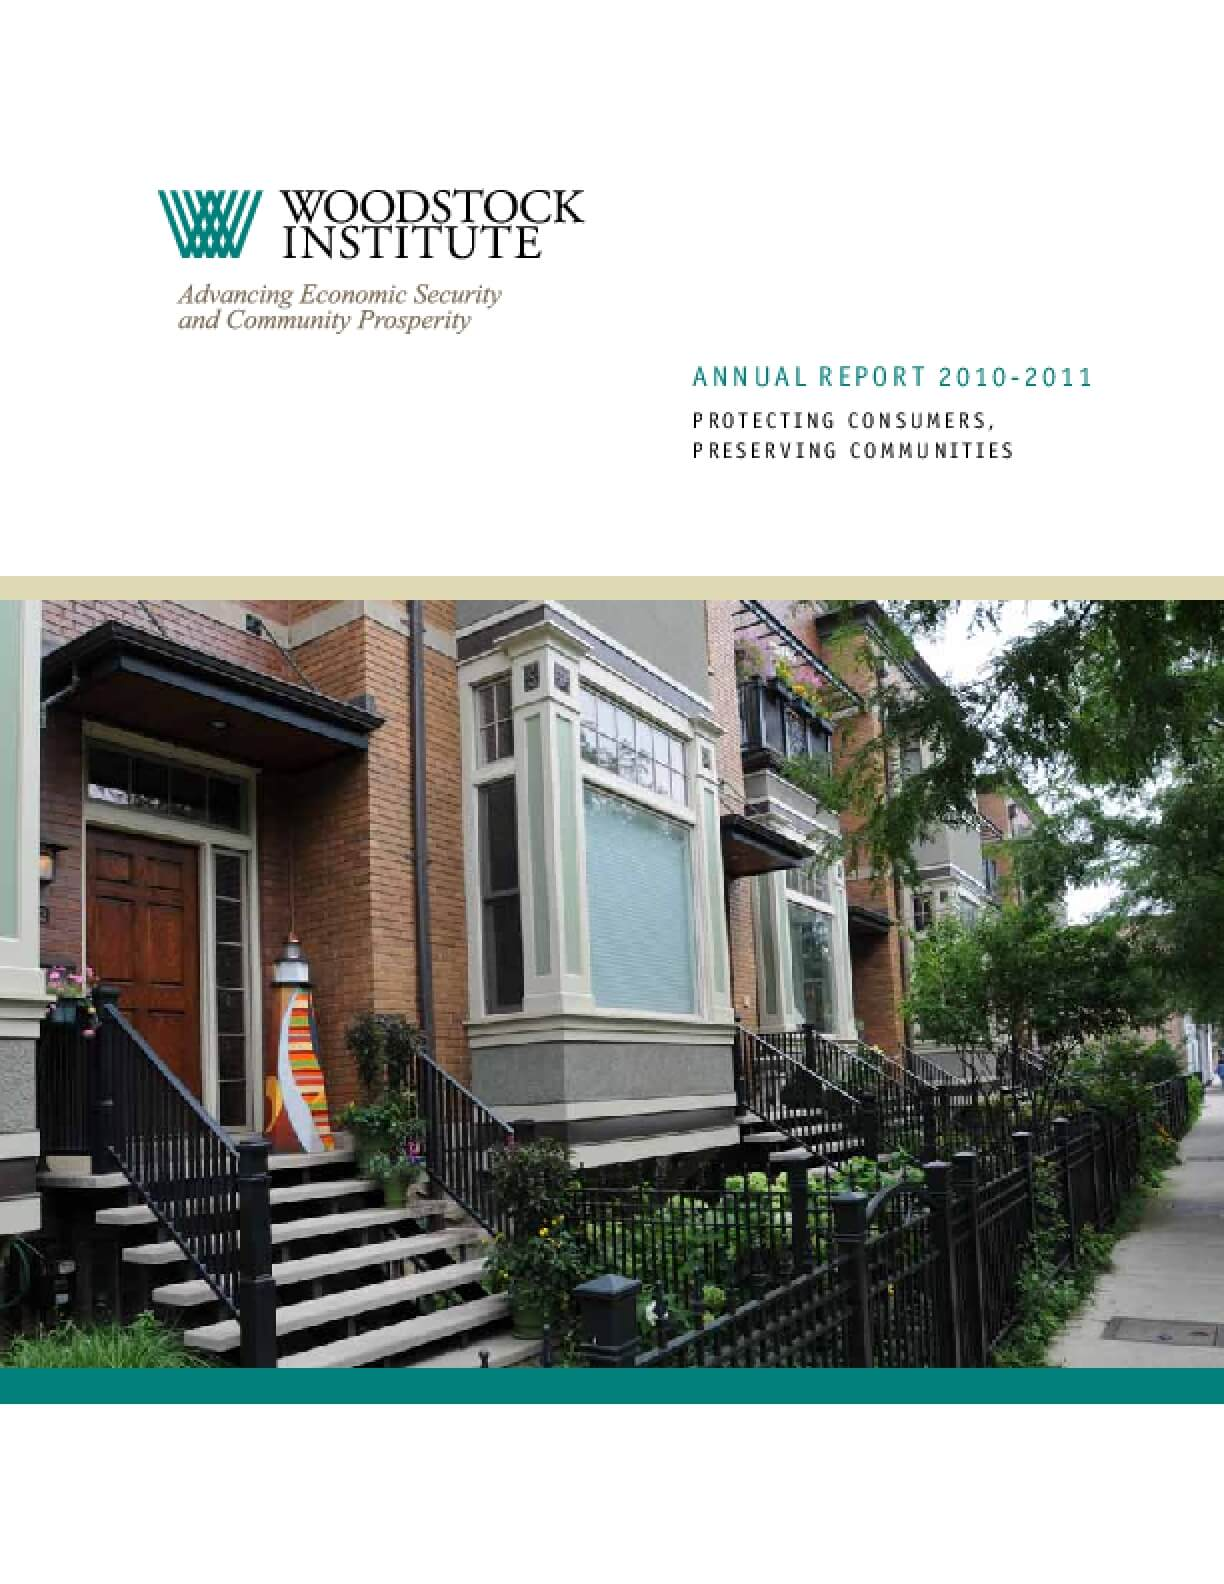 Woodstock Institute 2010-2011 Annual Report: Protecting Consumers, Preserving Communities